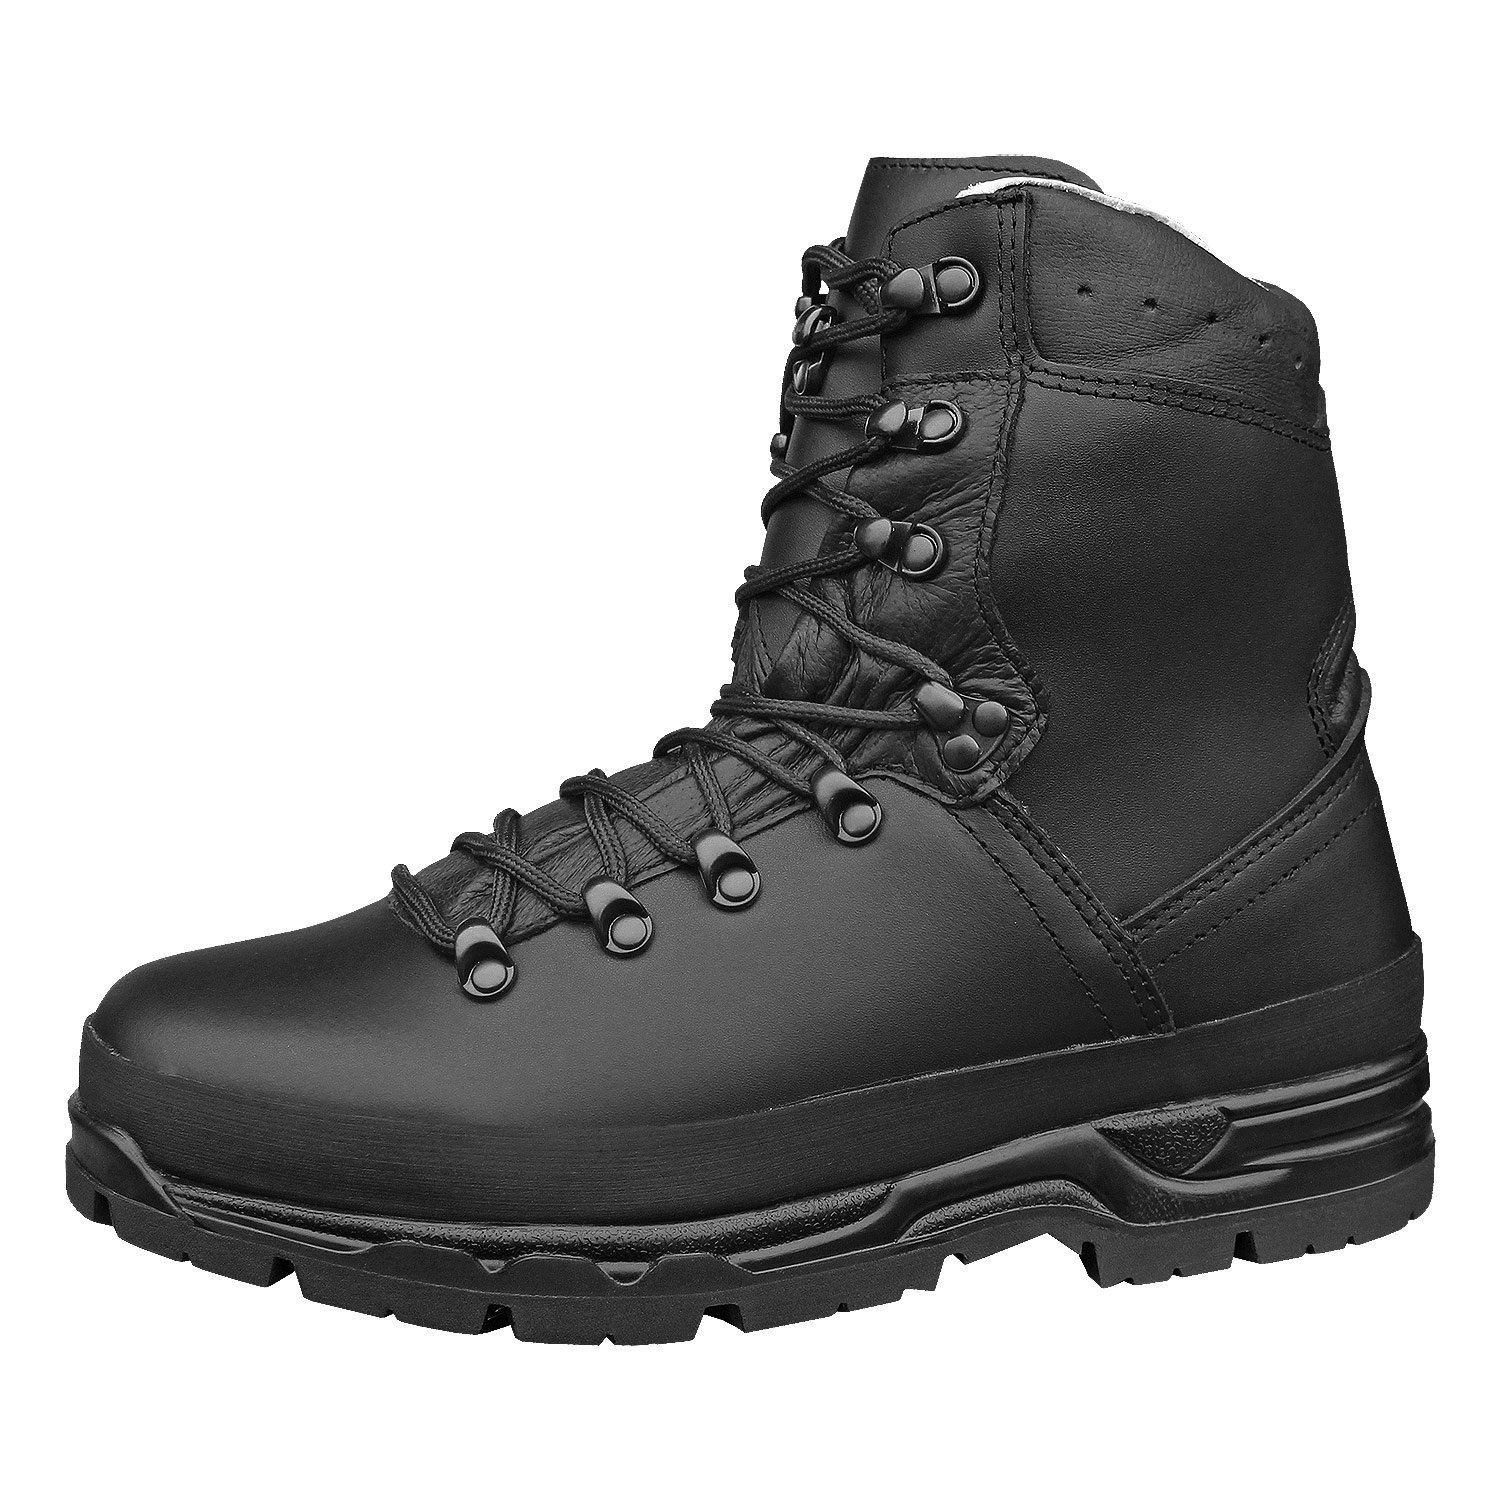 BRANDIT BW  LEATHER MOUNTAIN TACTICAL MENS BOOTS HIKING  OUTDOOR MENS TACTICAL FOOTWEAR 1d3934